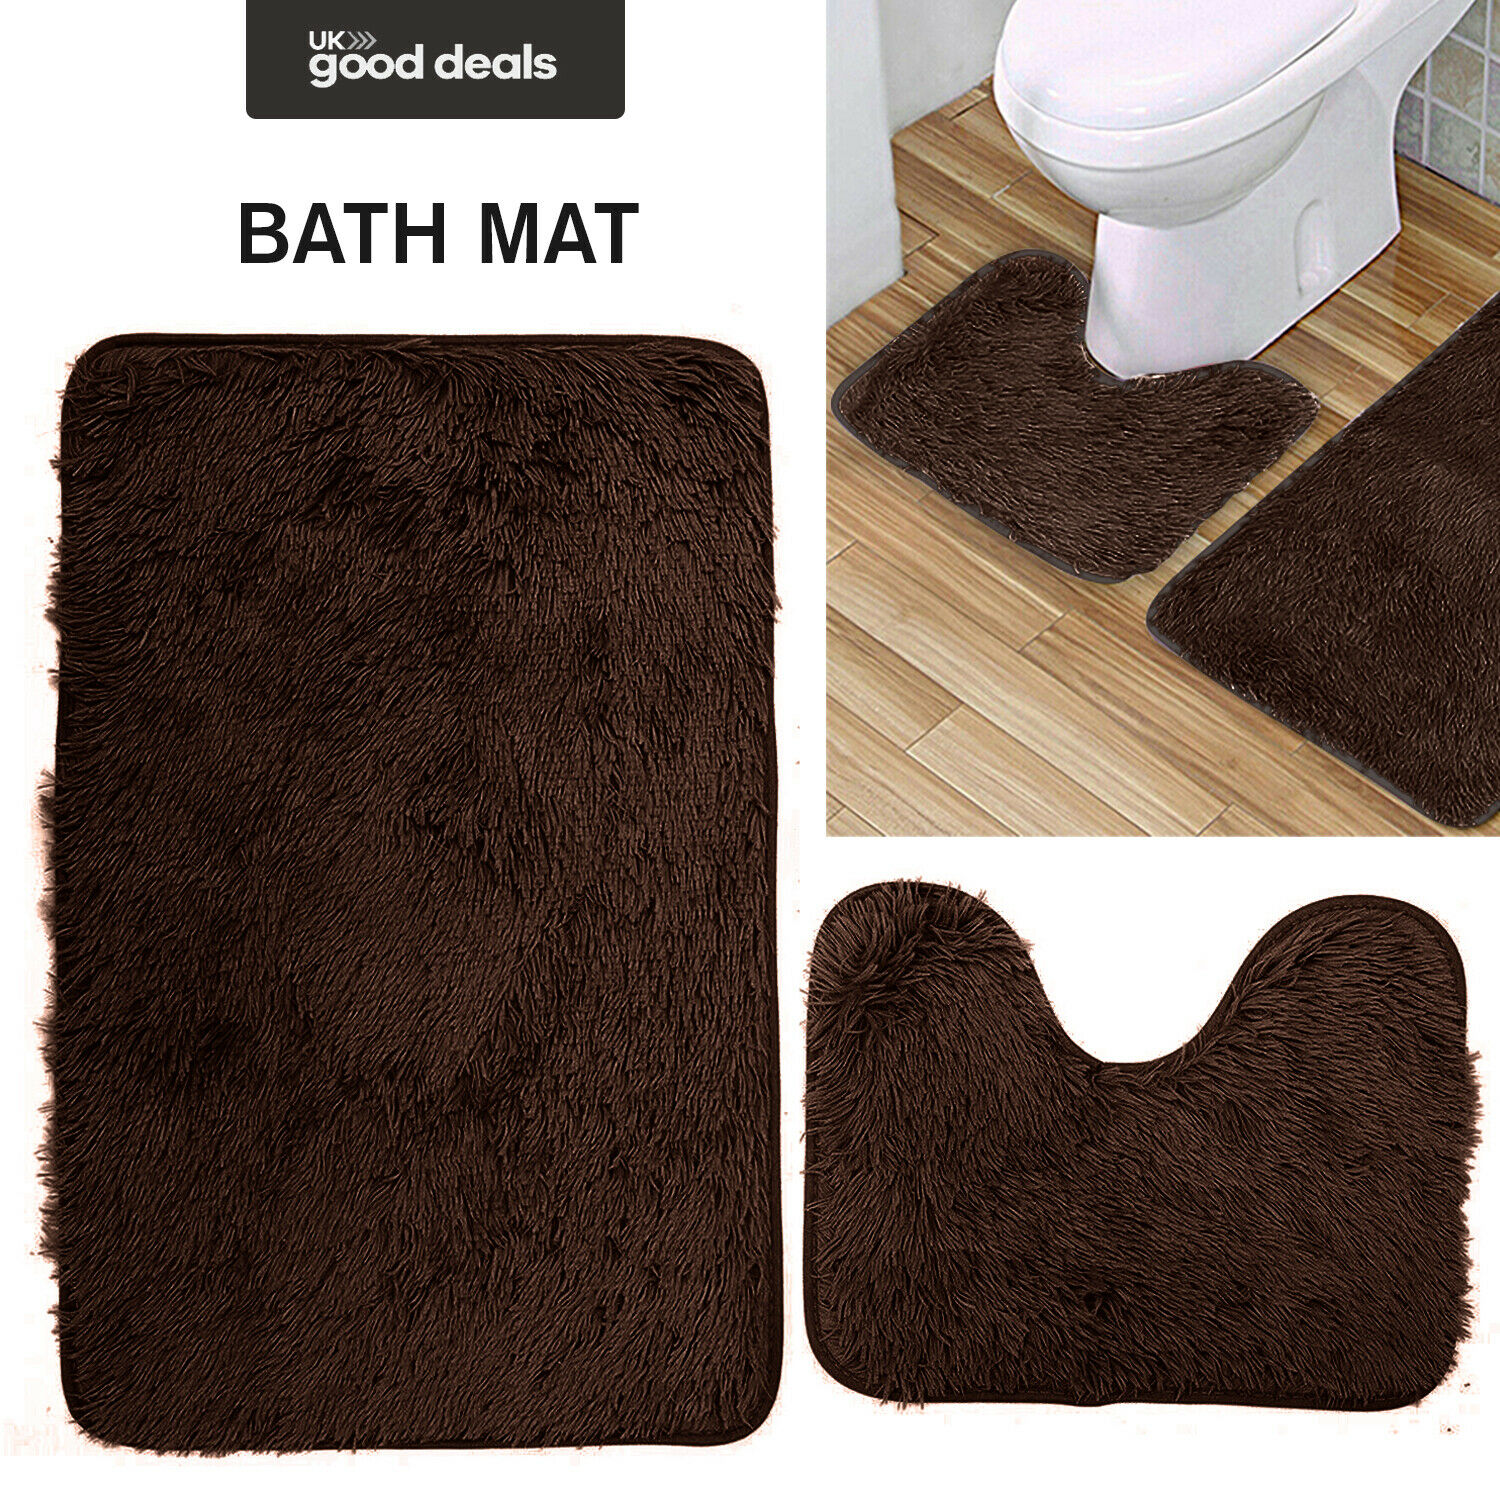 Soft Quality Shaggy Bath Mat Pedestal Mat Set Non Slip Toilet Bathroom Rug Brown Ebay